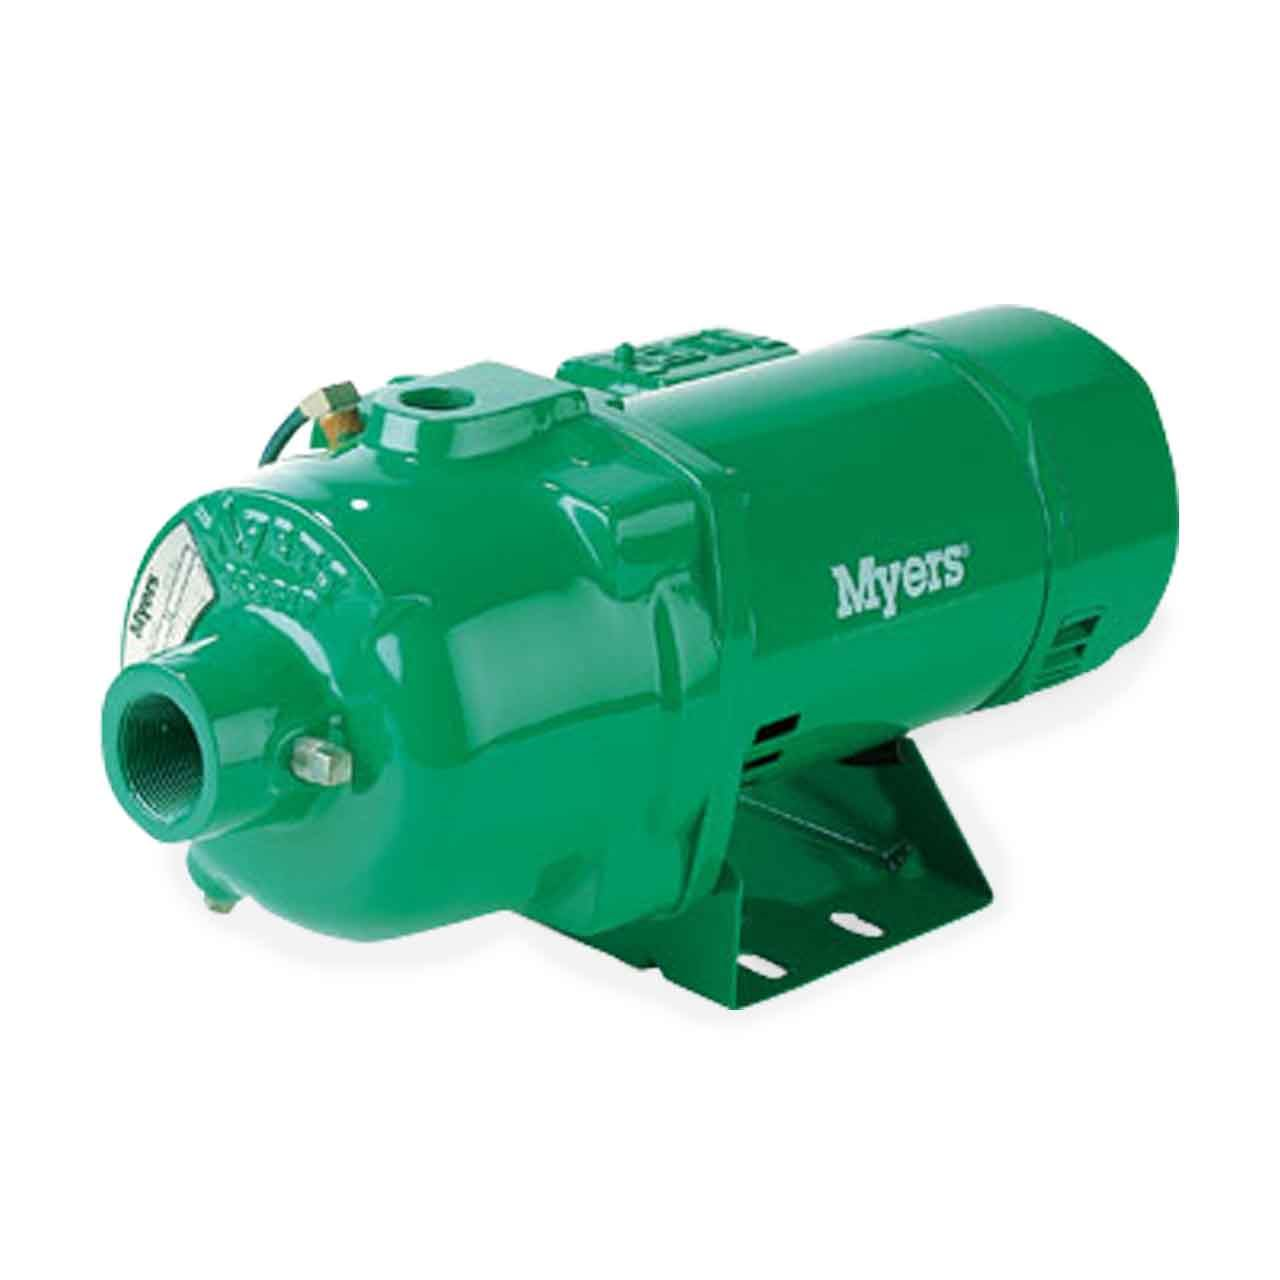 myers myers hr50s series convertible jet pumps 0 5 hp 115 230vmyers hr50s wiring diagram  [ 1280 x 1280 Pixel ]